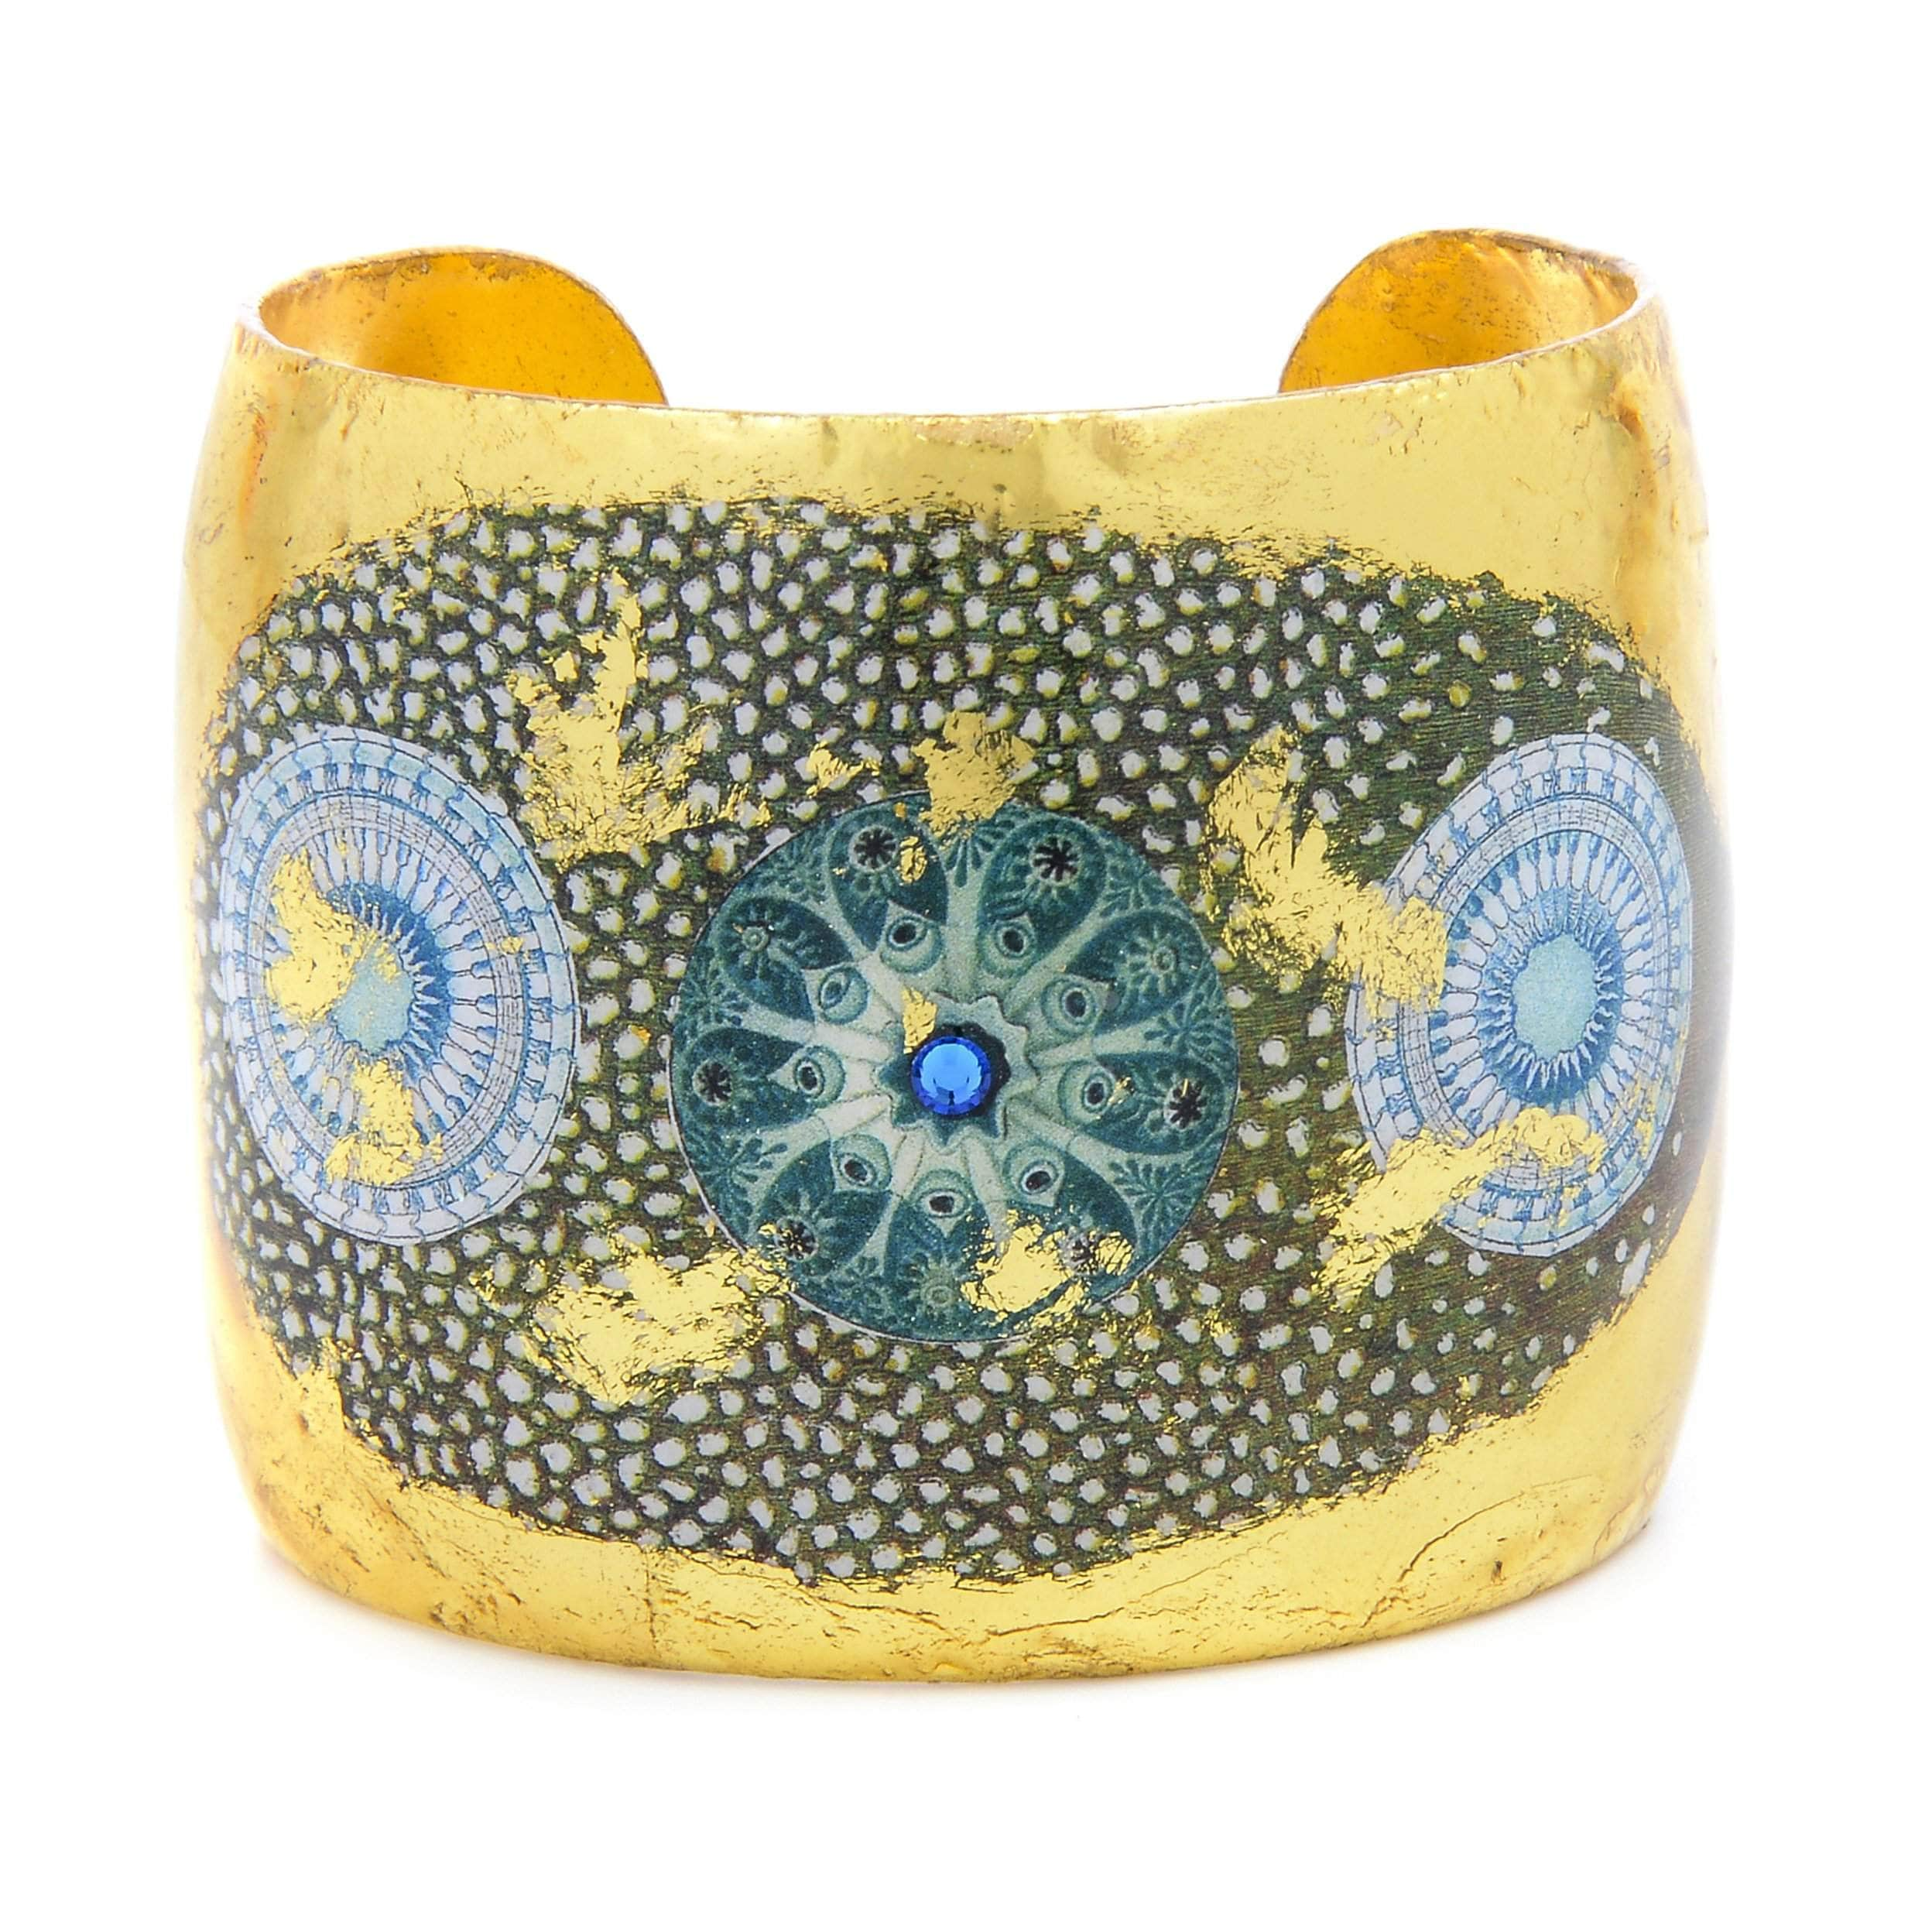 "Jellies 2"" Gold Cuff - OC122-Evocateur-Renee Taylor Gallery"